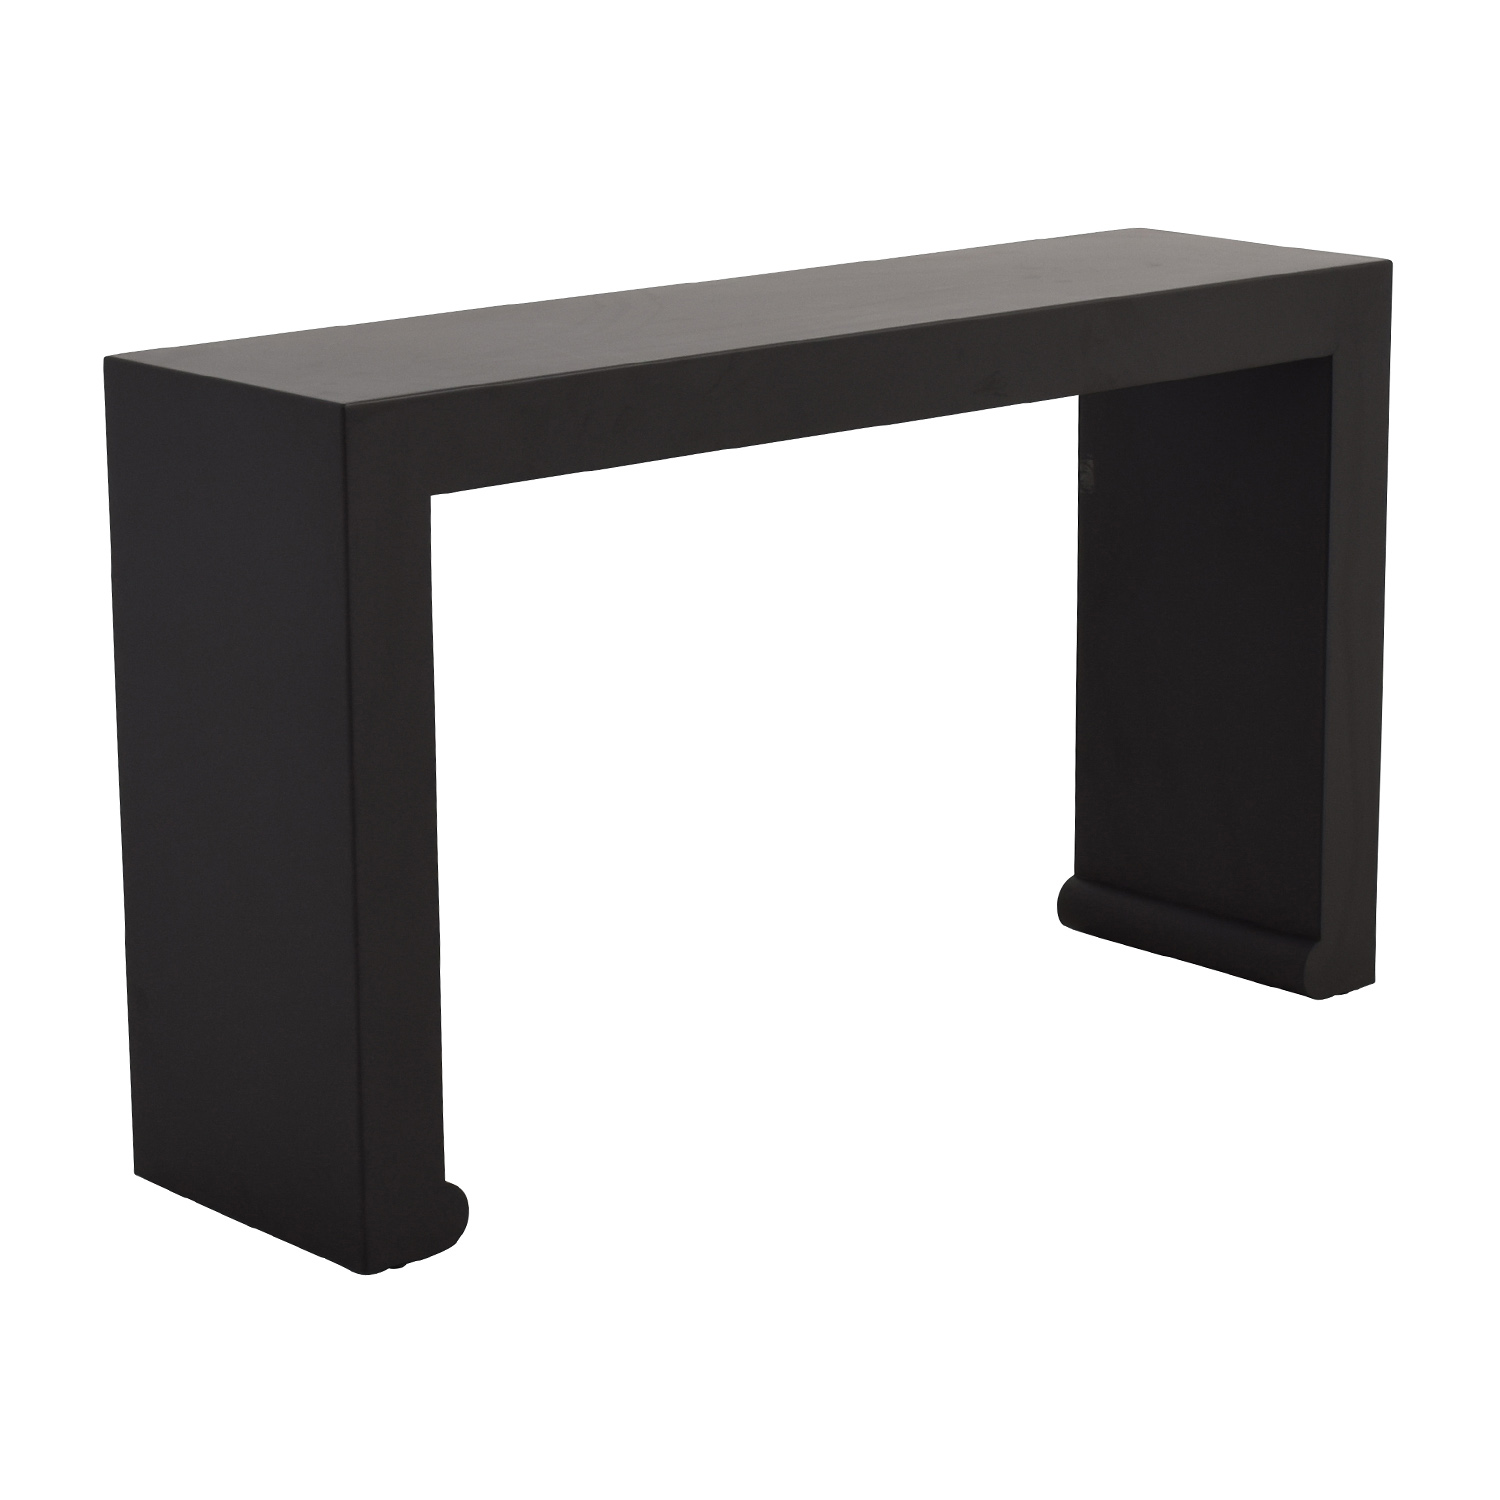 OFF Room And Board Room Board Brooklyn Steel Console Table - Room and board console table